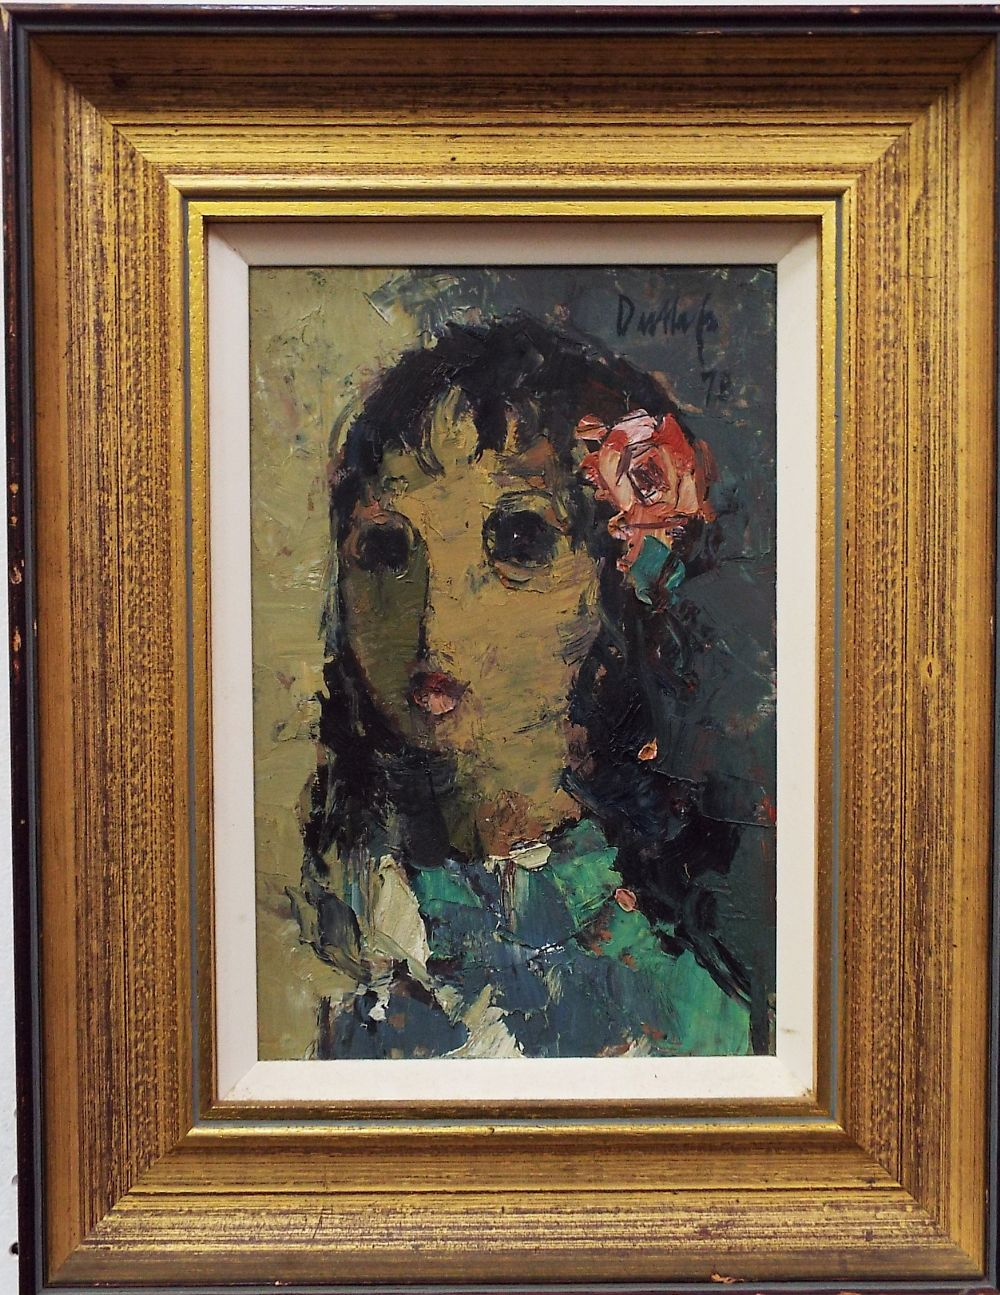 Lot 152 - 20th century continental school - Bust portrait of a girl with a flower in her hair, indistinctly